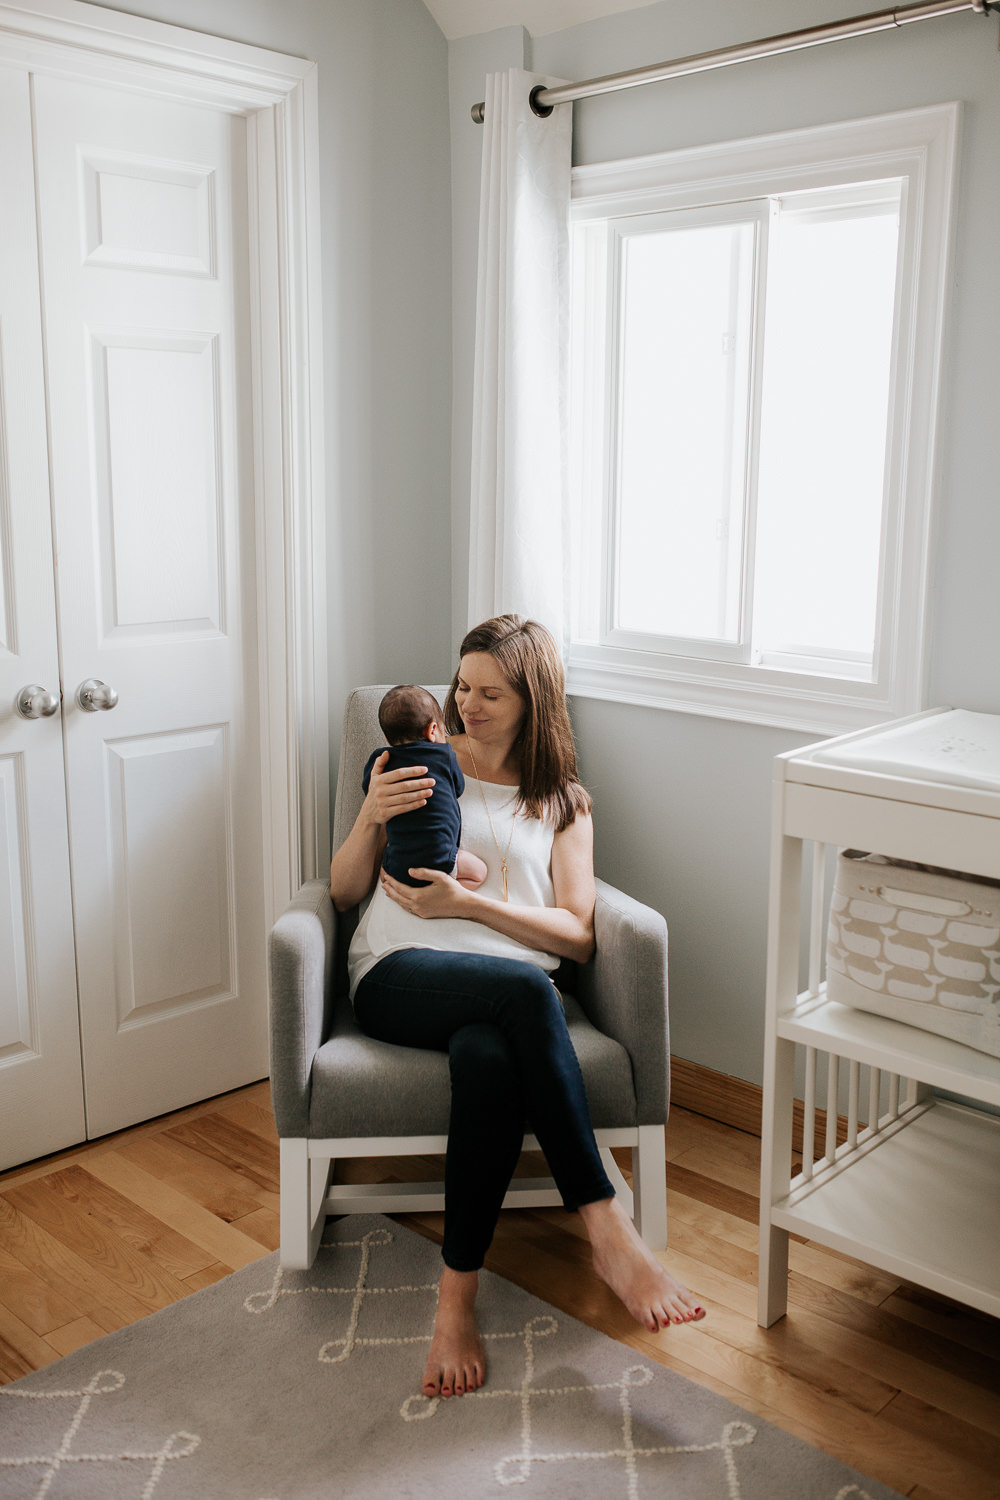 mom with long brown hair in white top and jeans sitting in grey glider in neutral nursery holding 2 week old baby boy in navy onsie with dark hair to her chest and smiling at son - Stouffville Lifestyle Photos